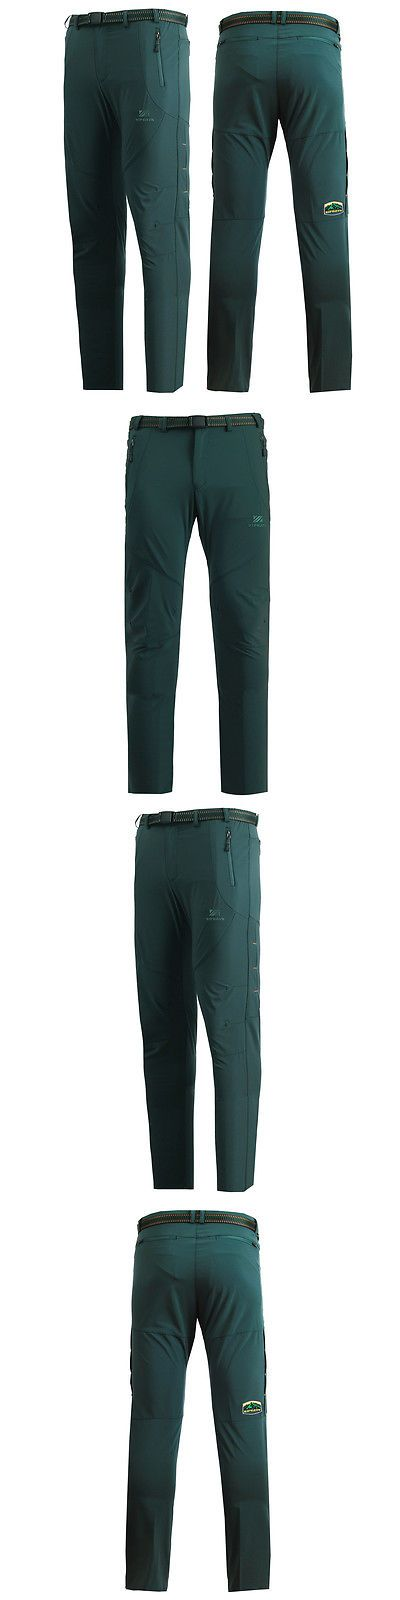 Clothing 101685: Mens Womens Walking Outdoor Hiking Clothing Trousers Camping Trekking Pants -> BUY IT NOW ONLY: $39 on eBay!